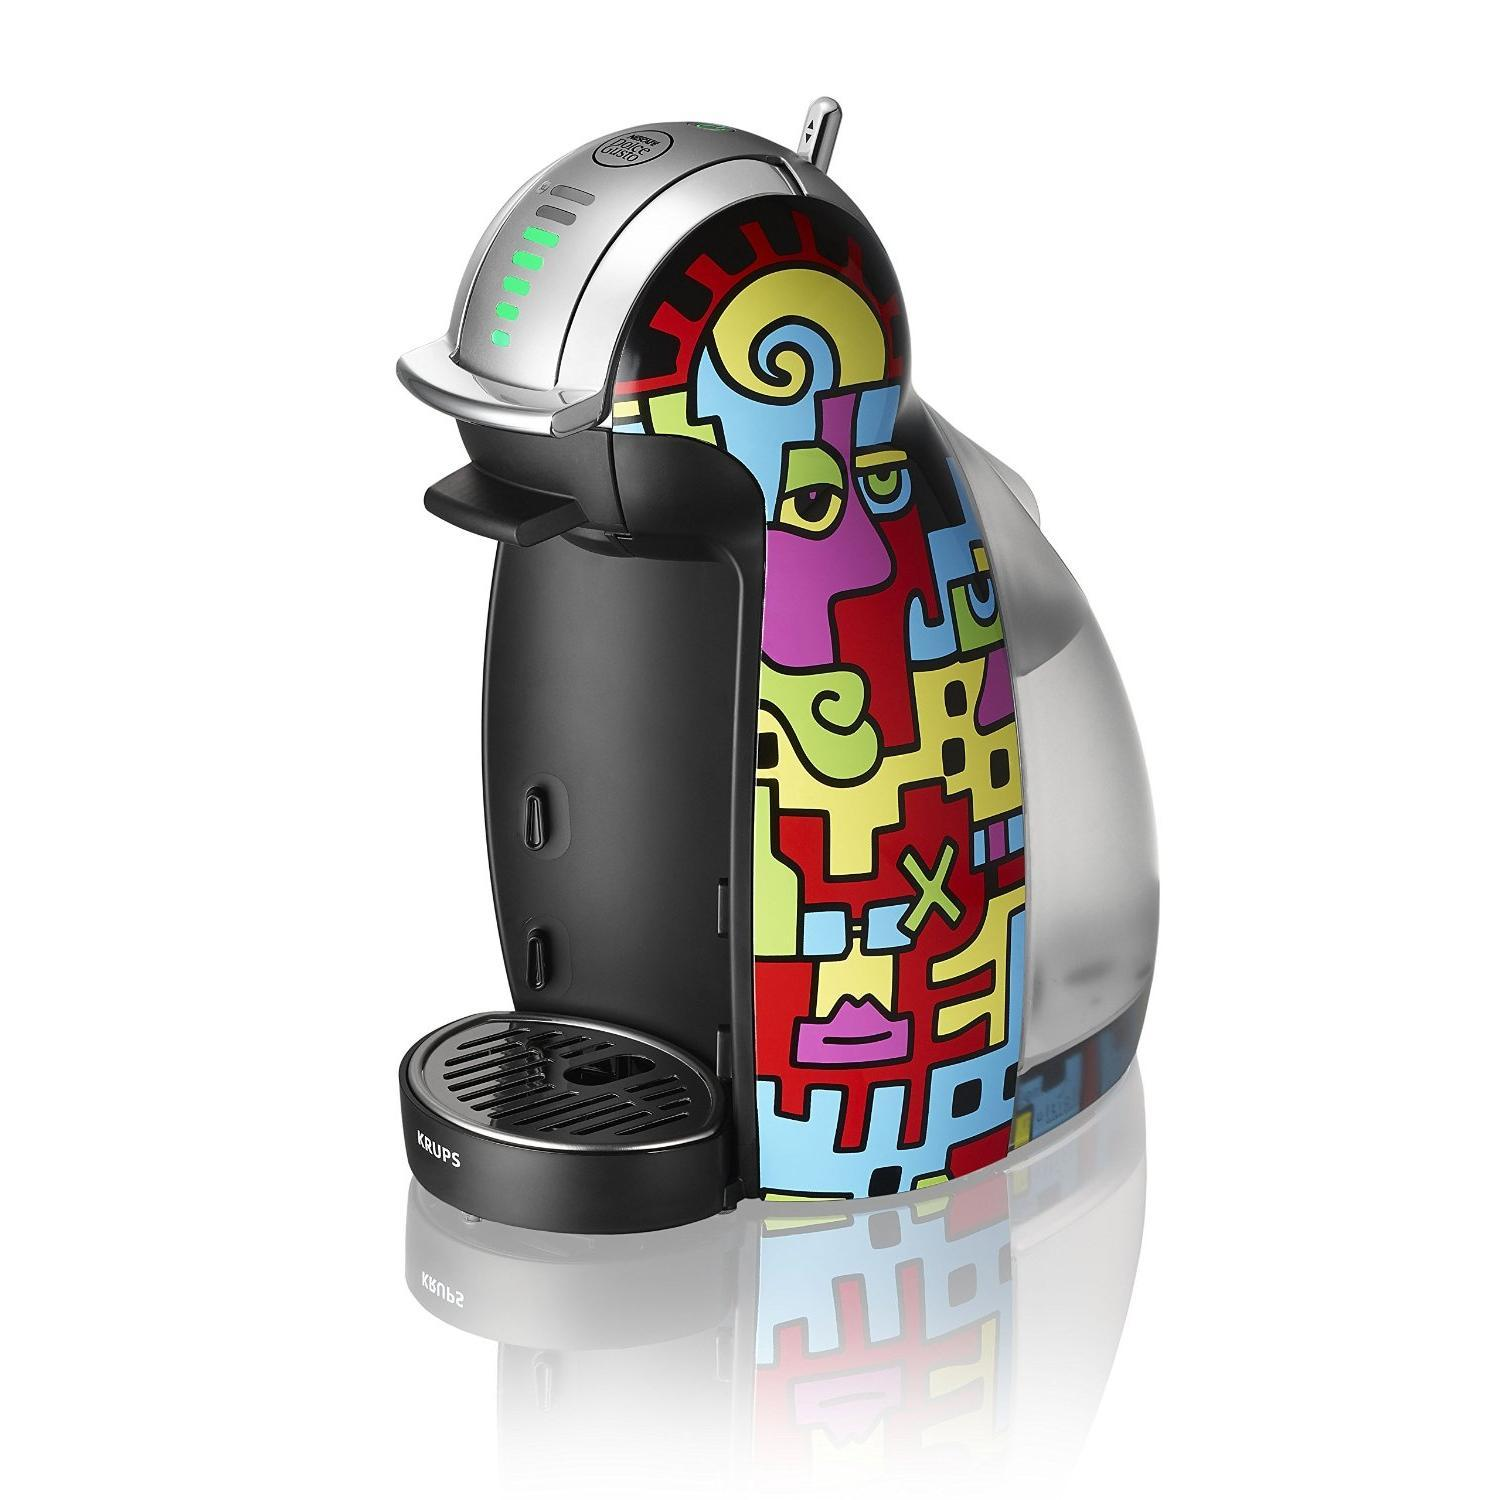 Dolce gusto Genio2 Krups KP160H